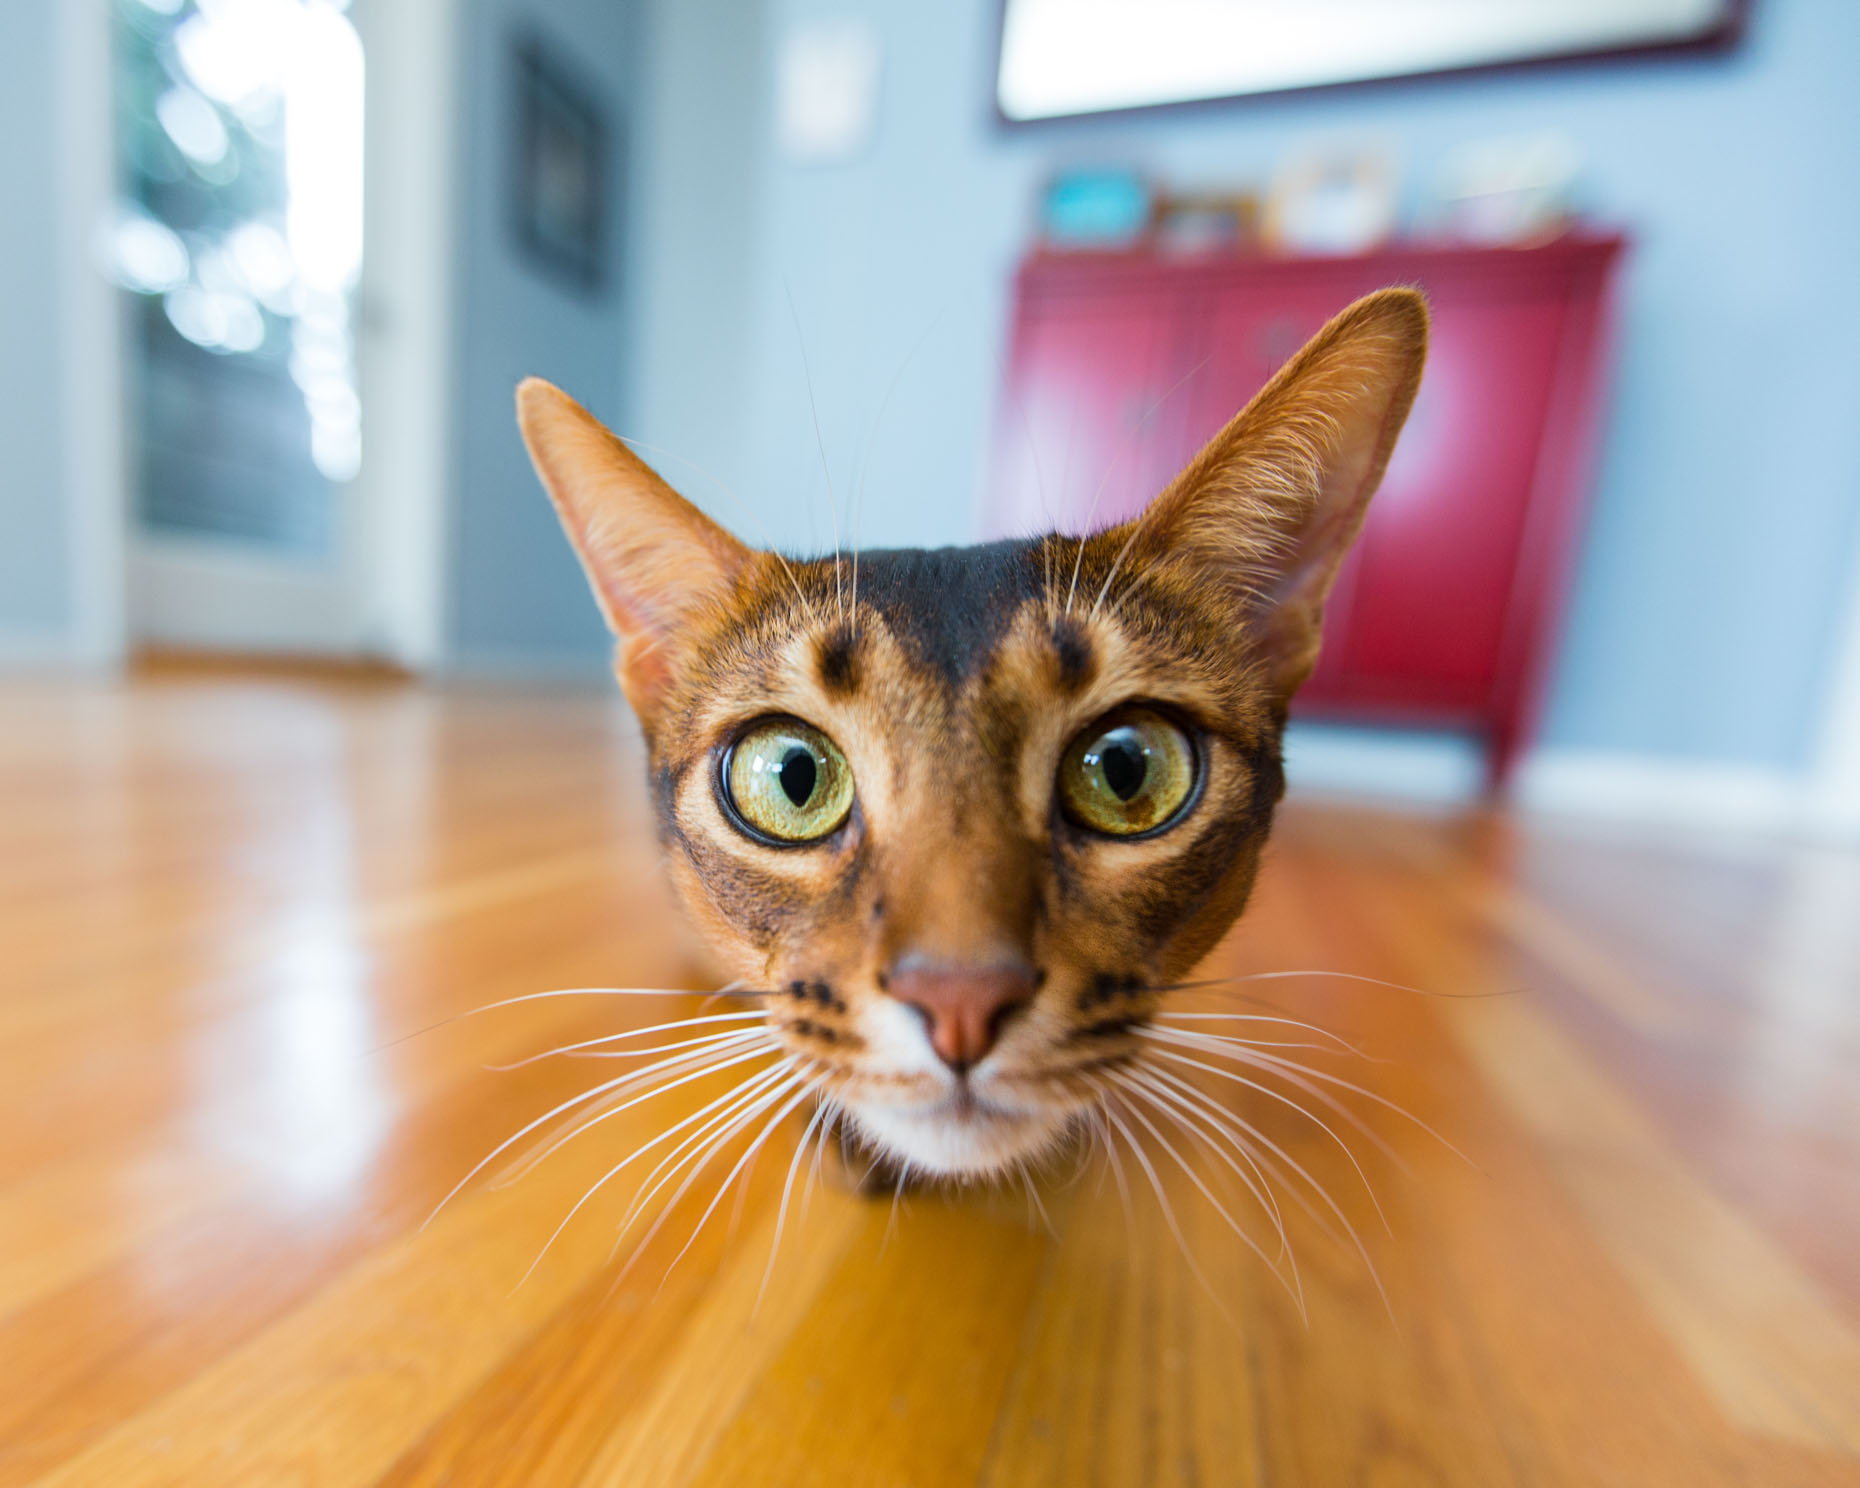 Cat and Pet Photography | Curious Cat Face by Mark Rogers